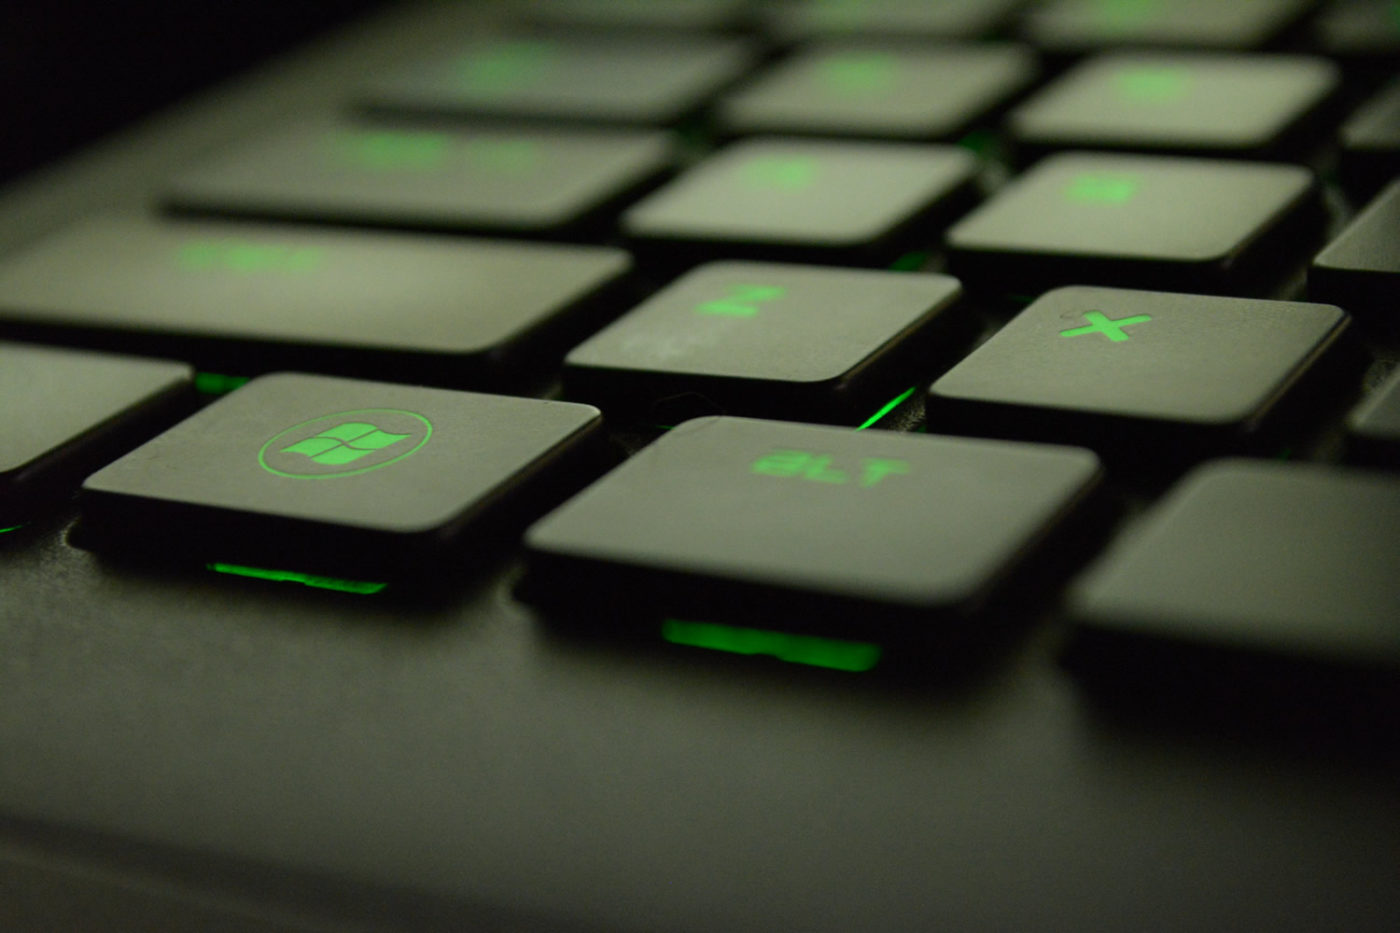 Keyboard with green highlight